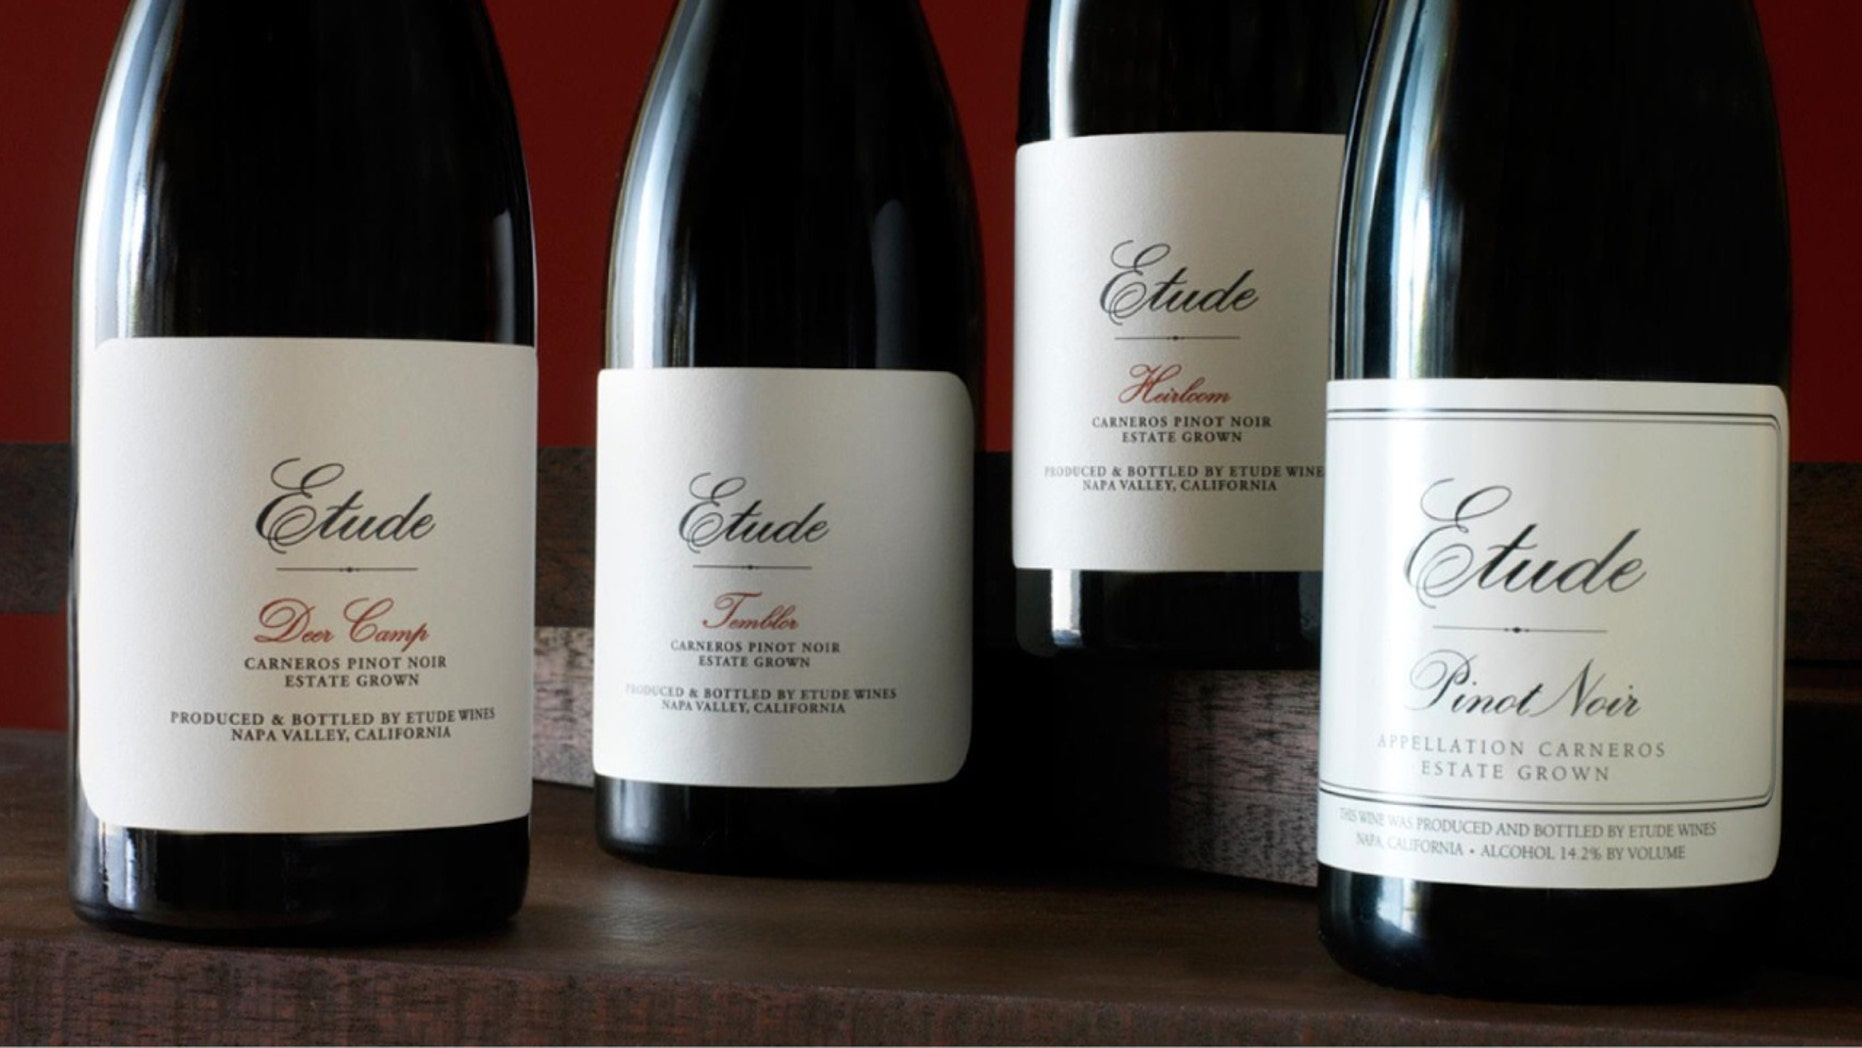 Calorie information will be included on several wine brands in the near future.